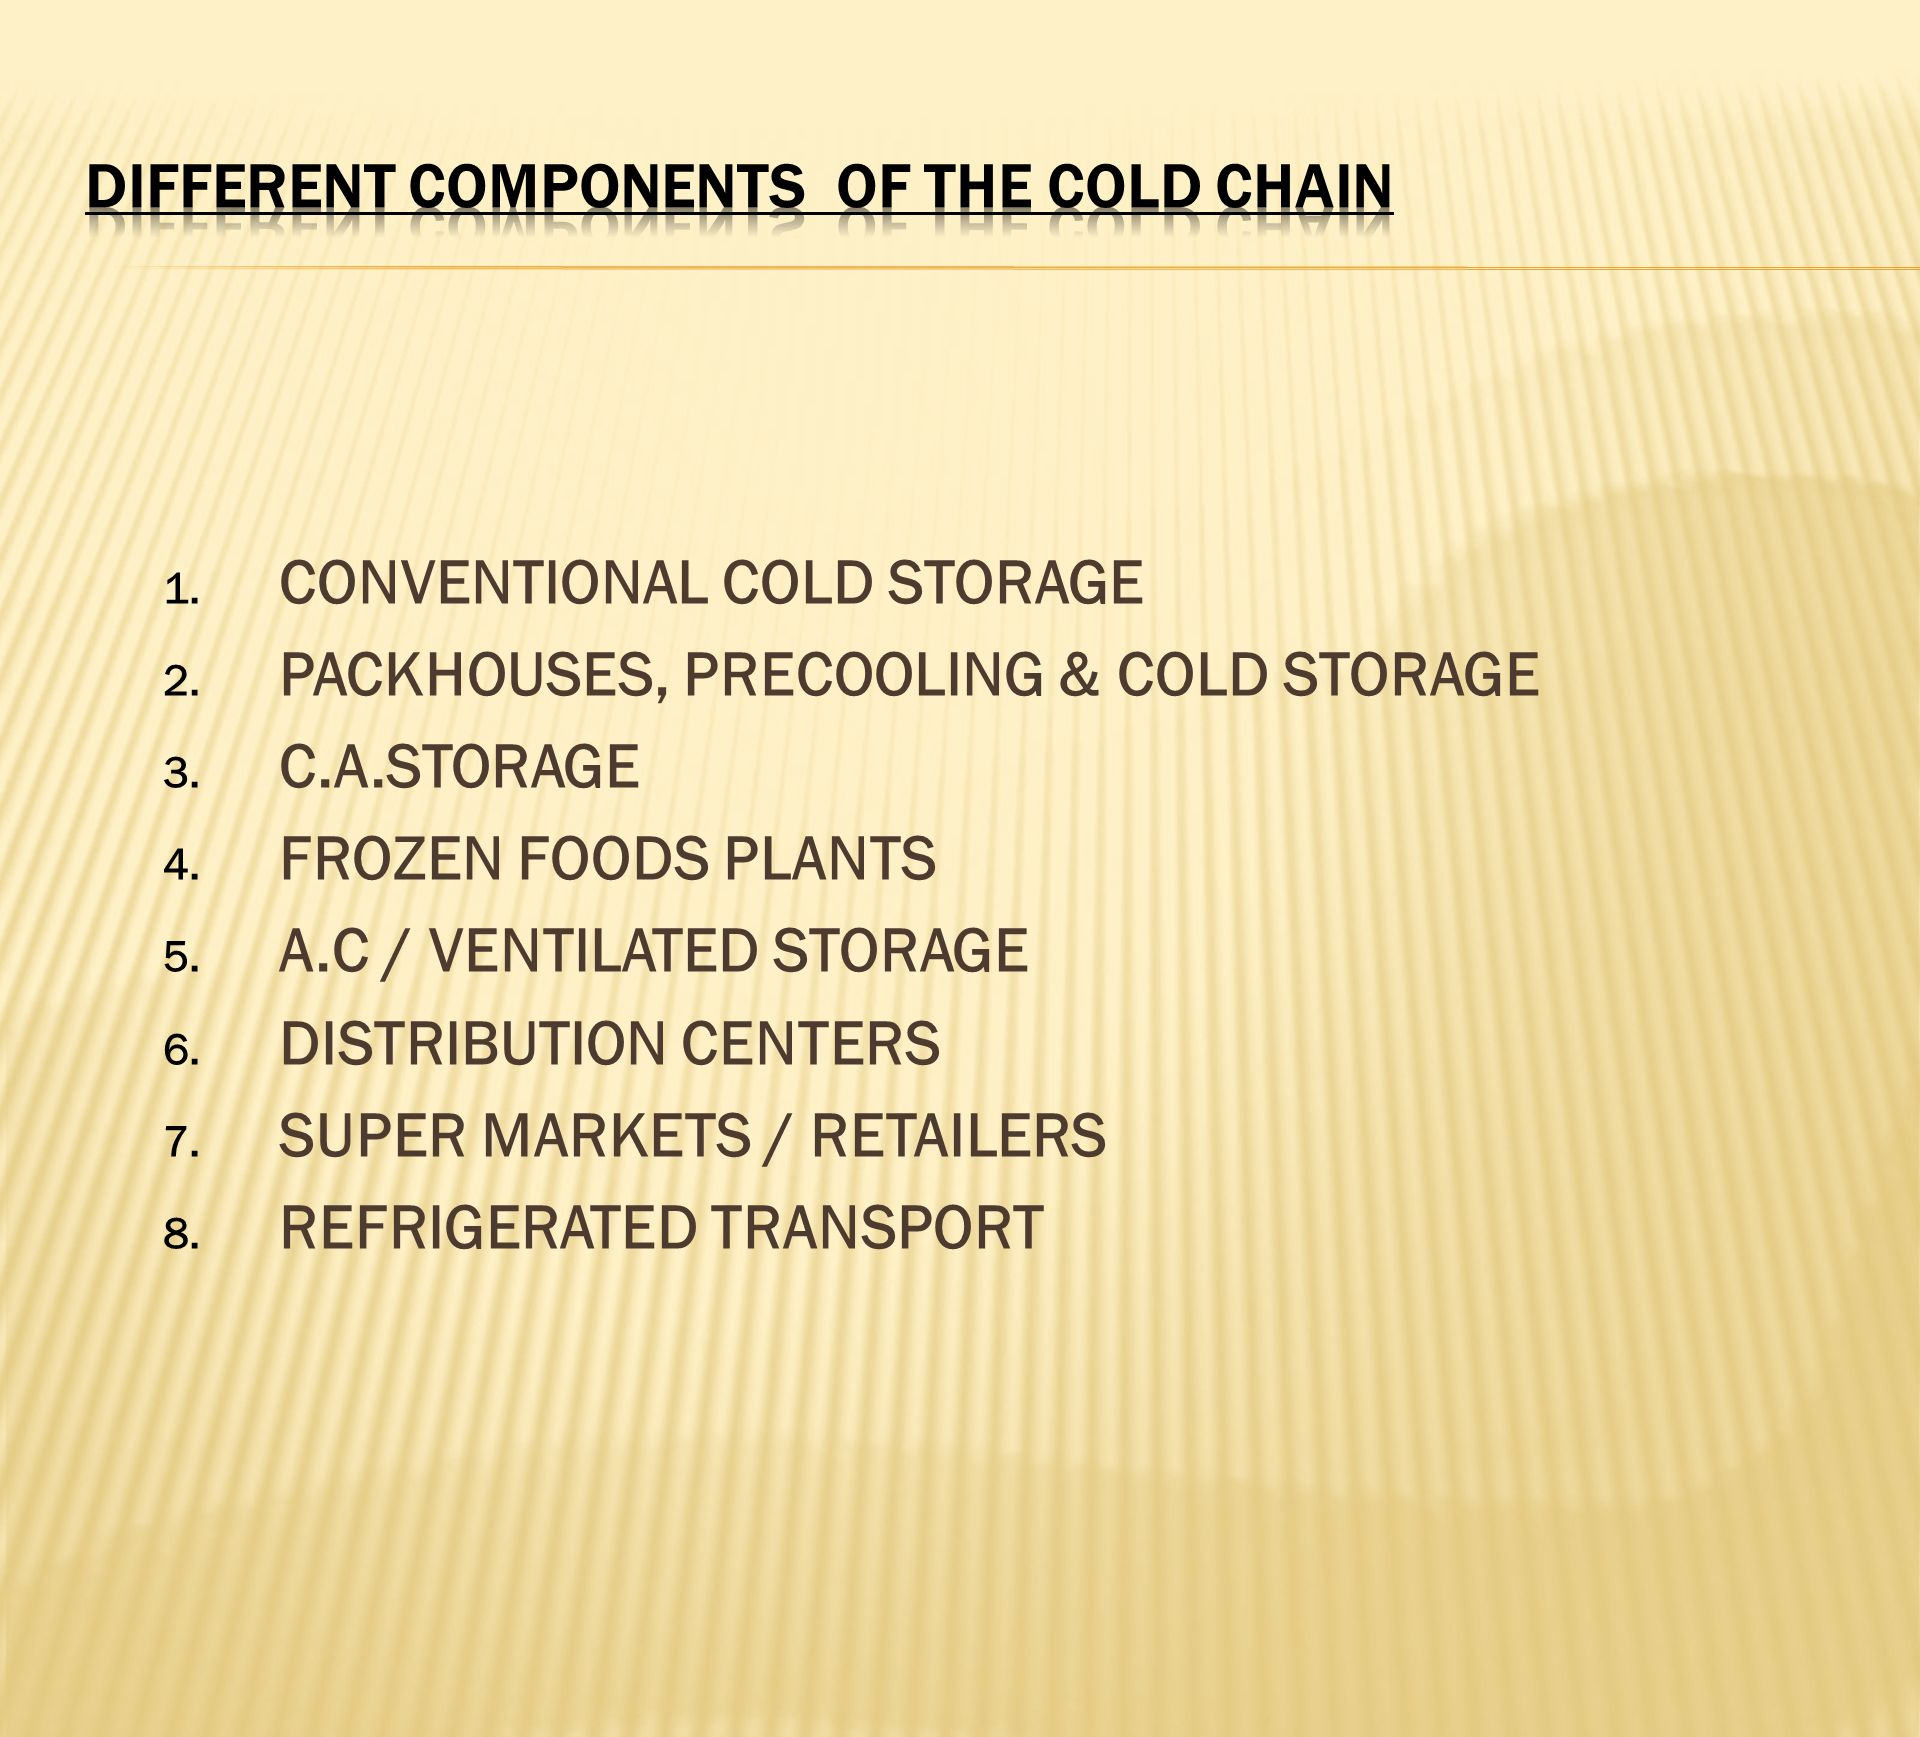 DIFFERENT COMPONENTS OF THE COLD CHAIN